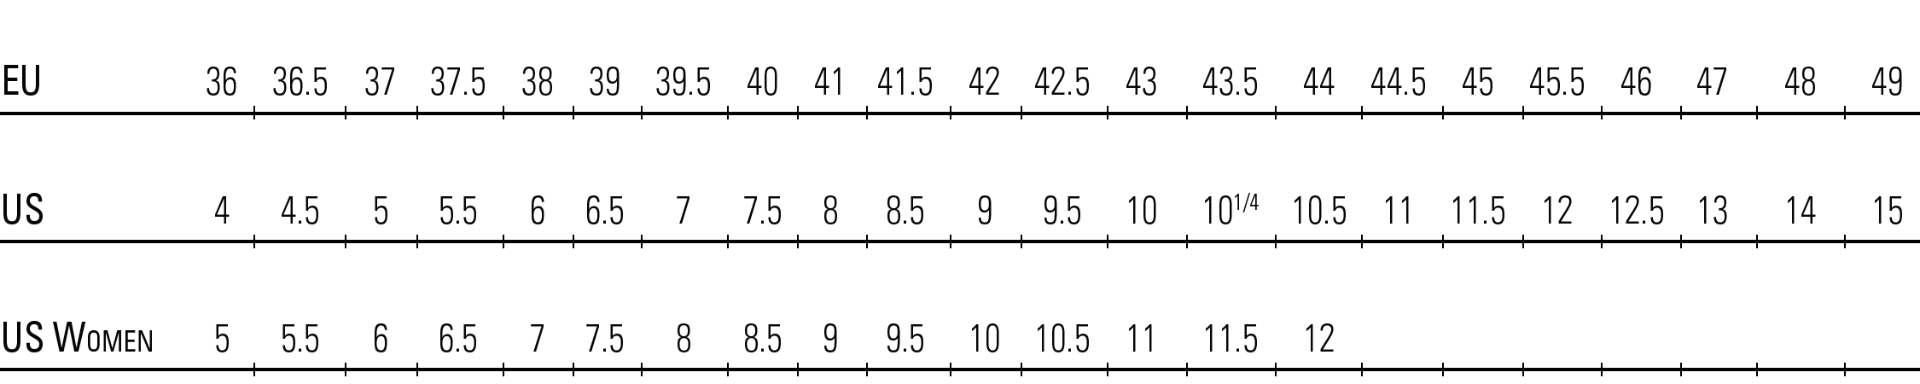 Crispi Boot Sizing Chart